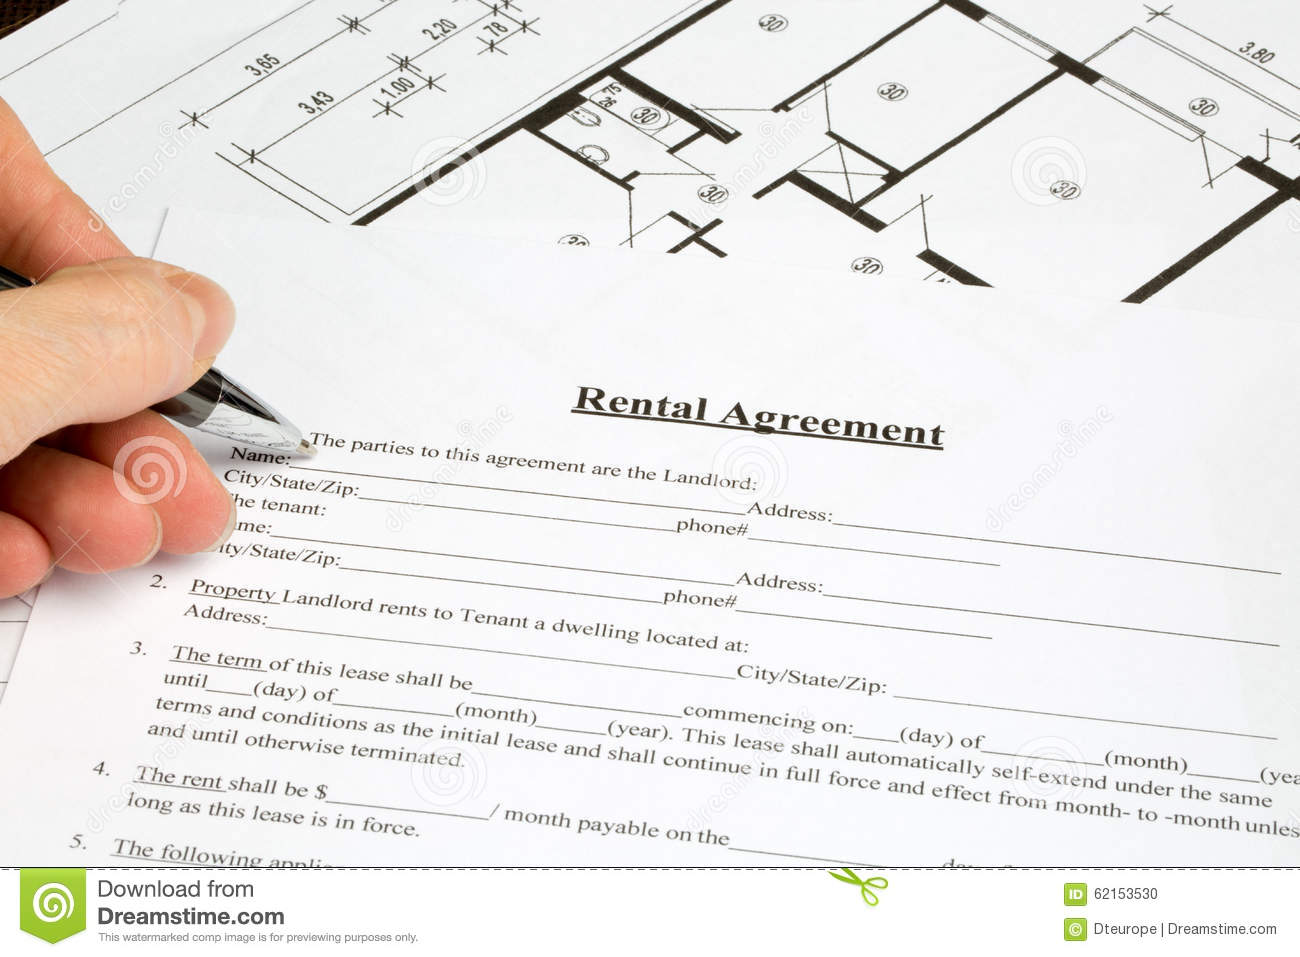 Thumbs Dreamstime Com Z Rental Agreement Paper For